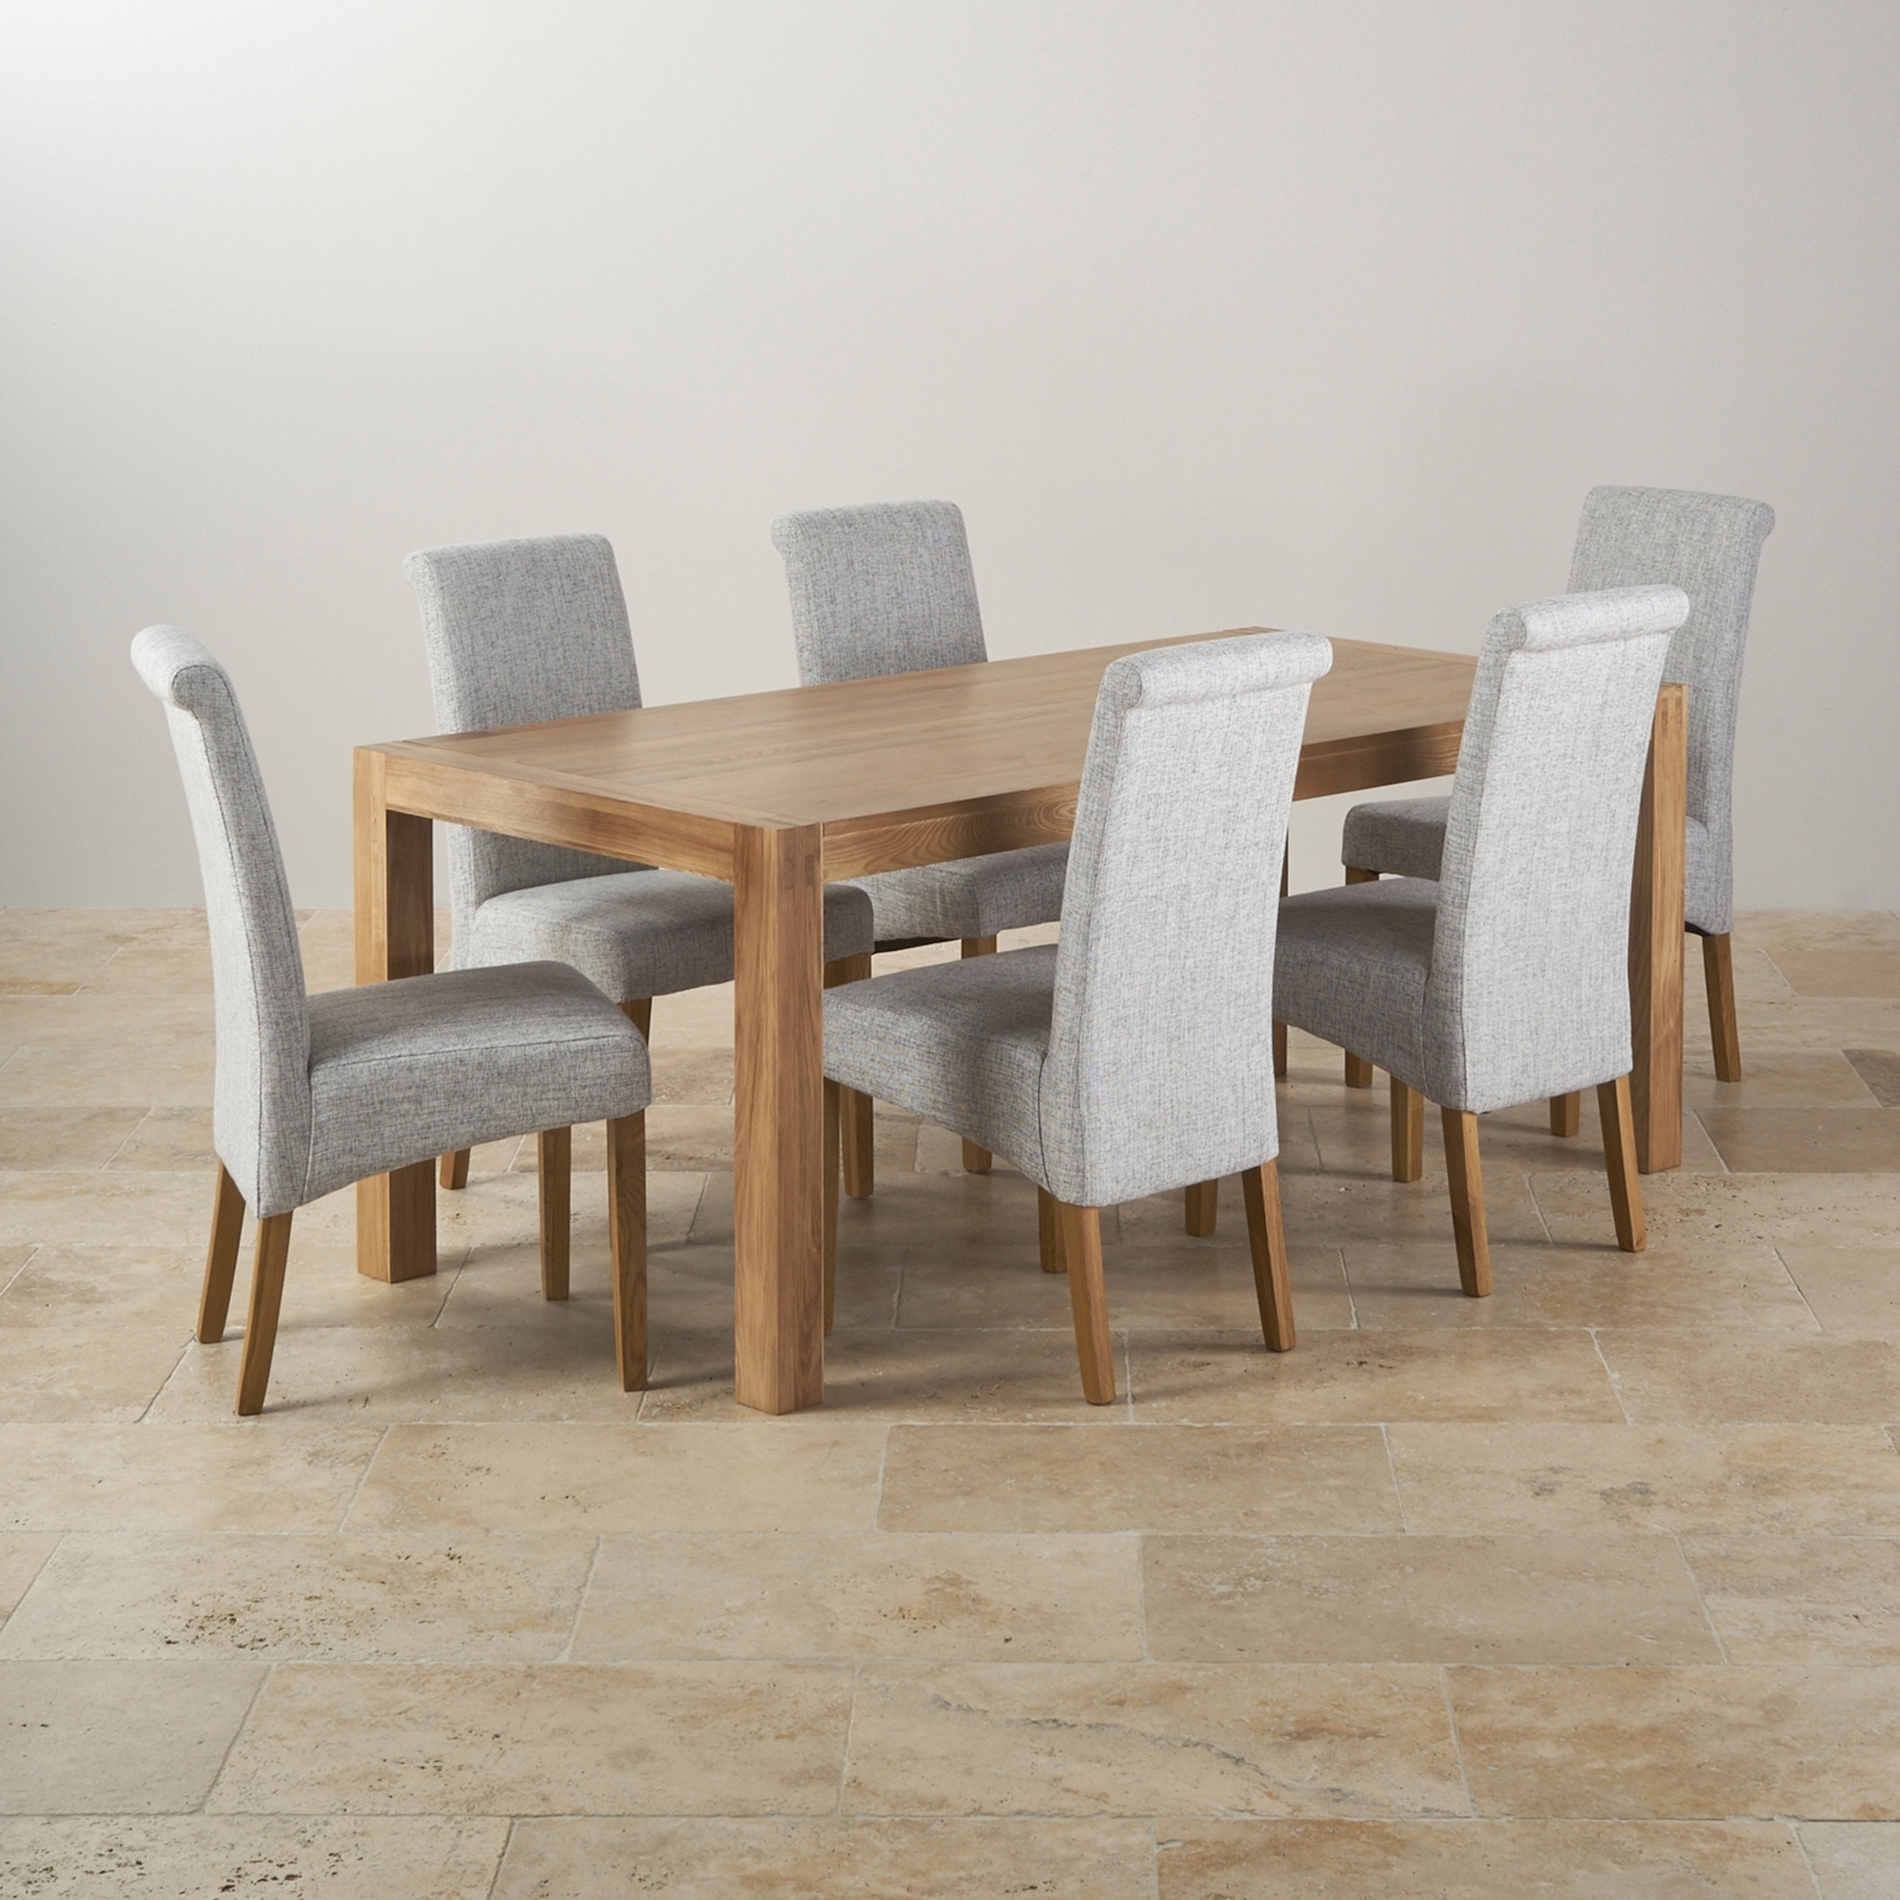 Laurent 5 Piece Round Dining Sets With Wood Chairs With Regard To Well Liked Alto Solid Oak 6Ft Dining Table With 6 Grey Fabric Chairs Ghost (View 13 of 25)